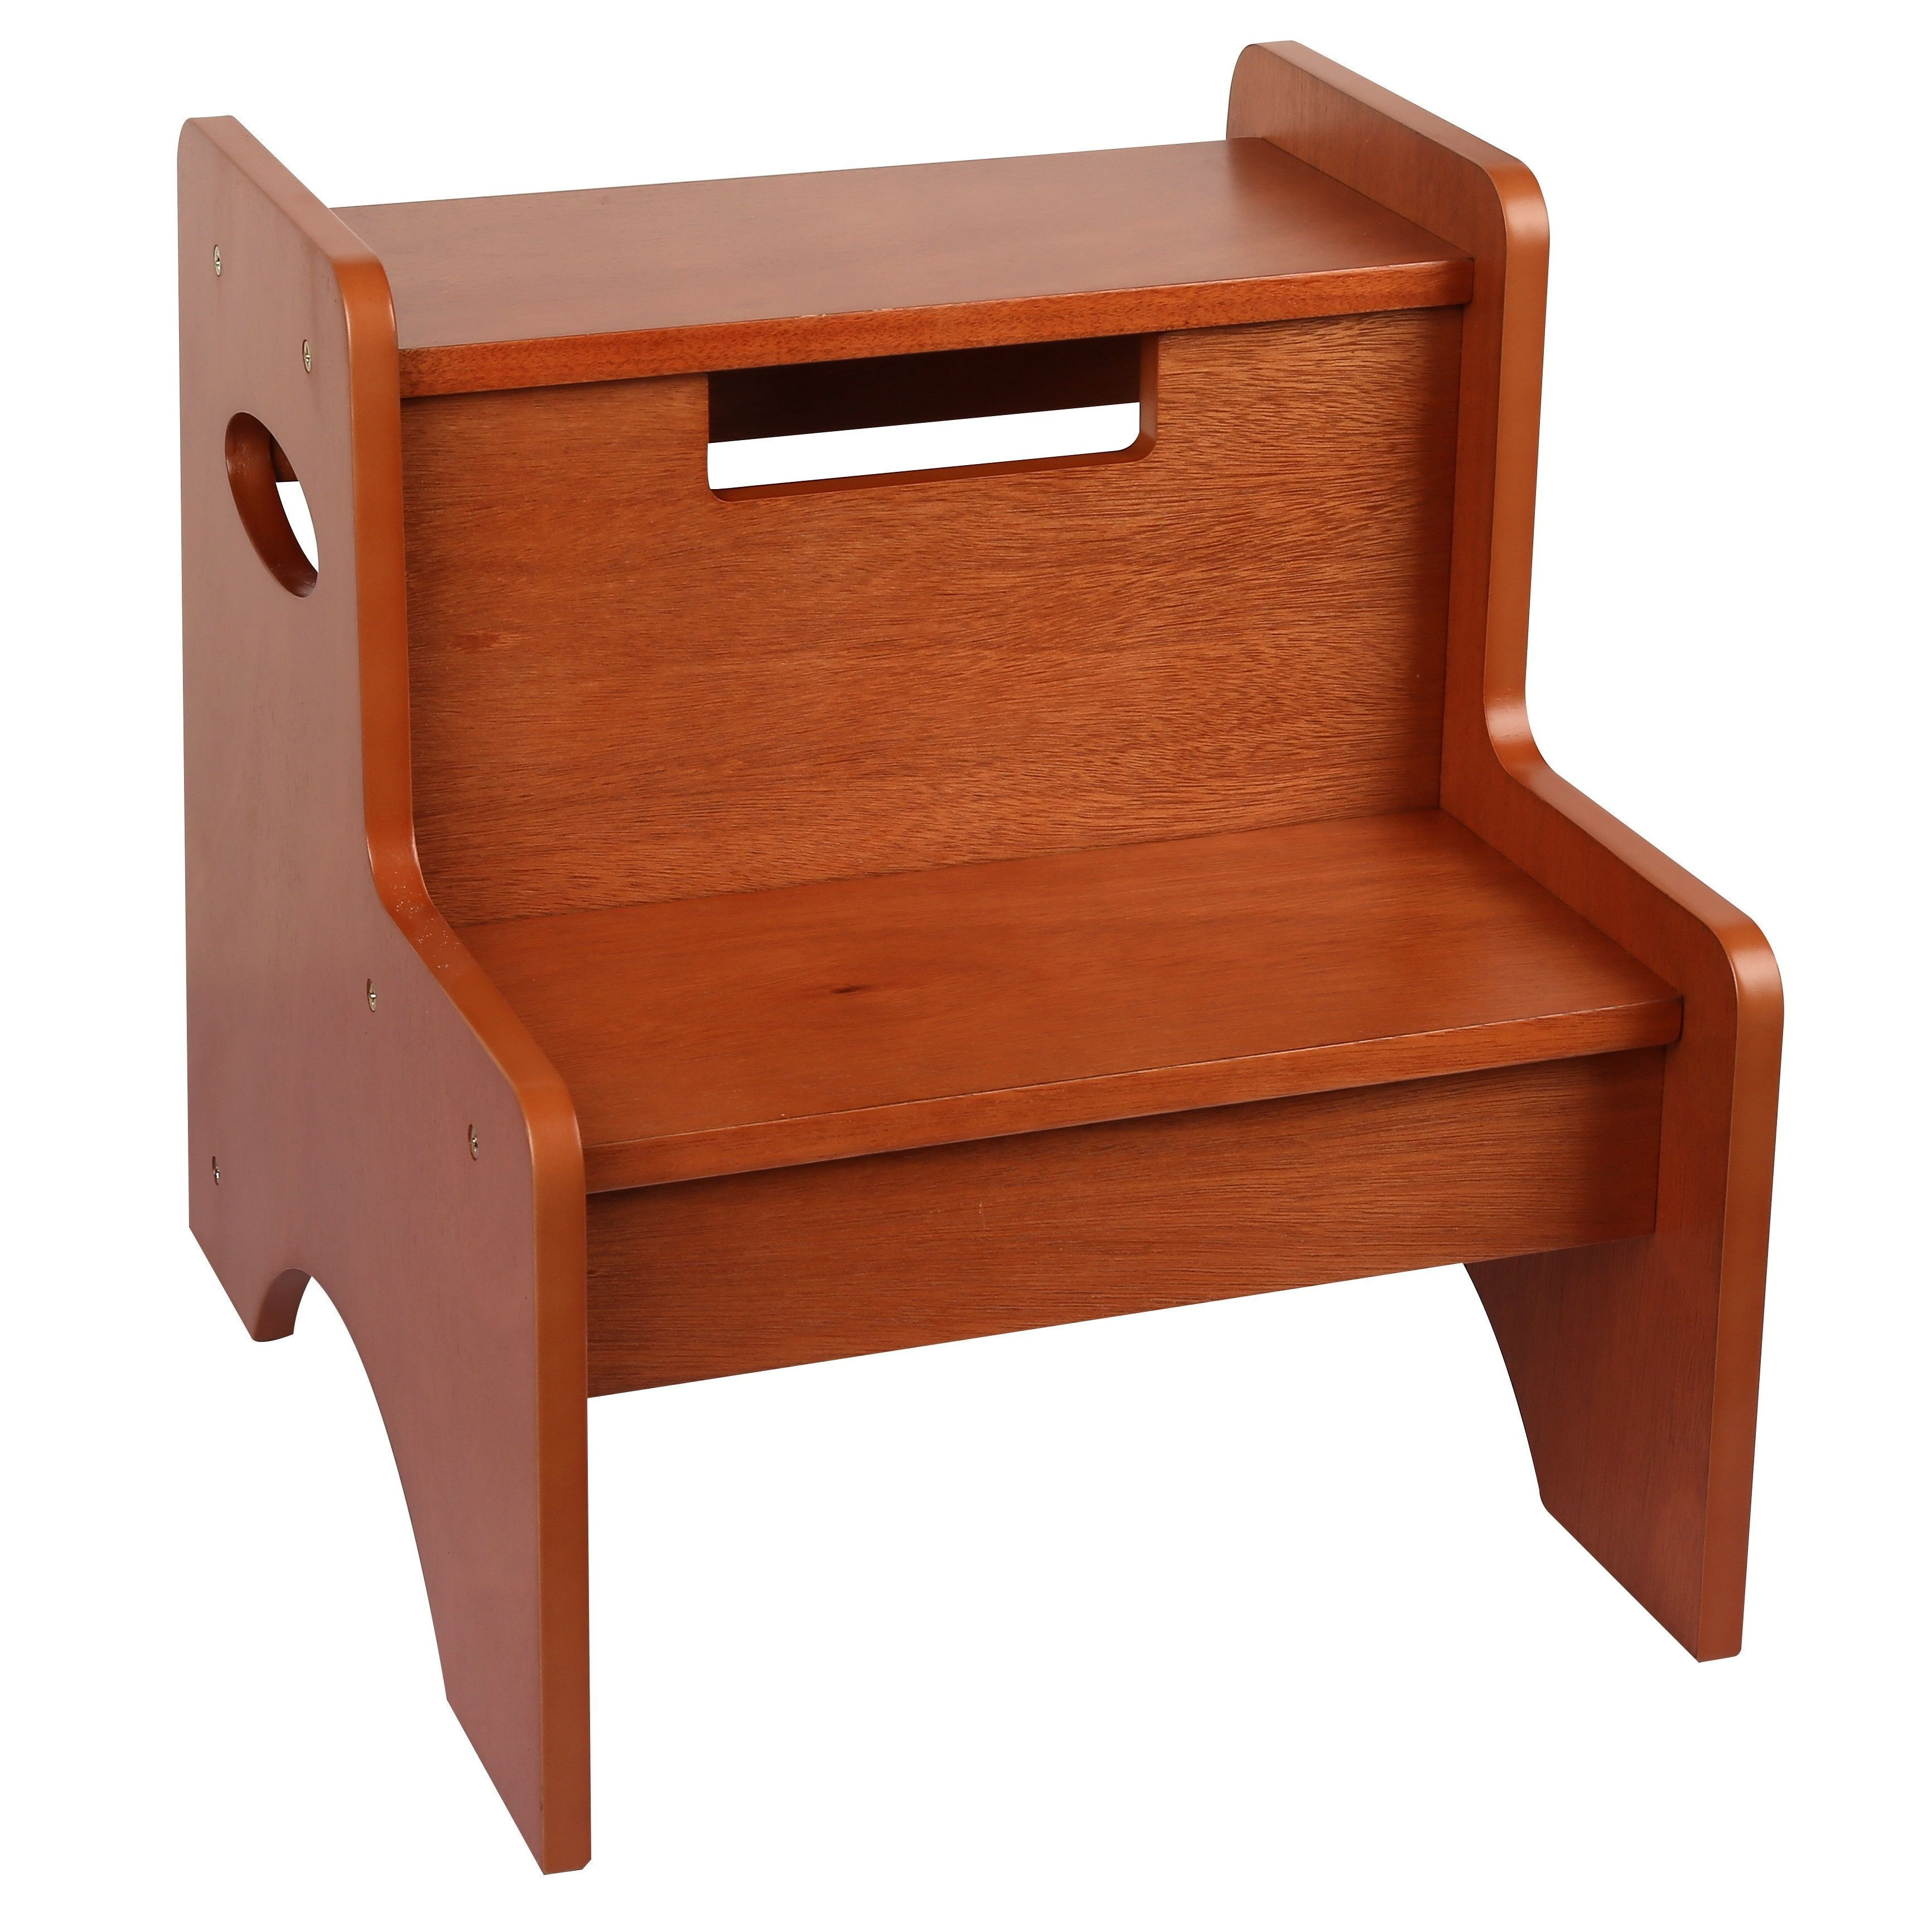 Online Shopping Bedding Furniture Electronics Jewelry Clothing More Stool Wooden Steps Furniture